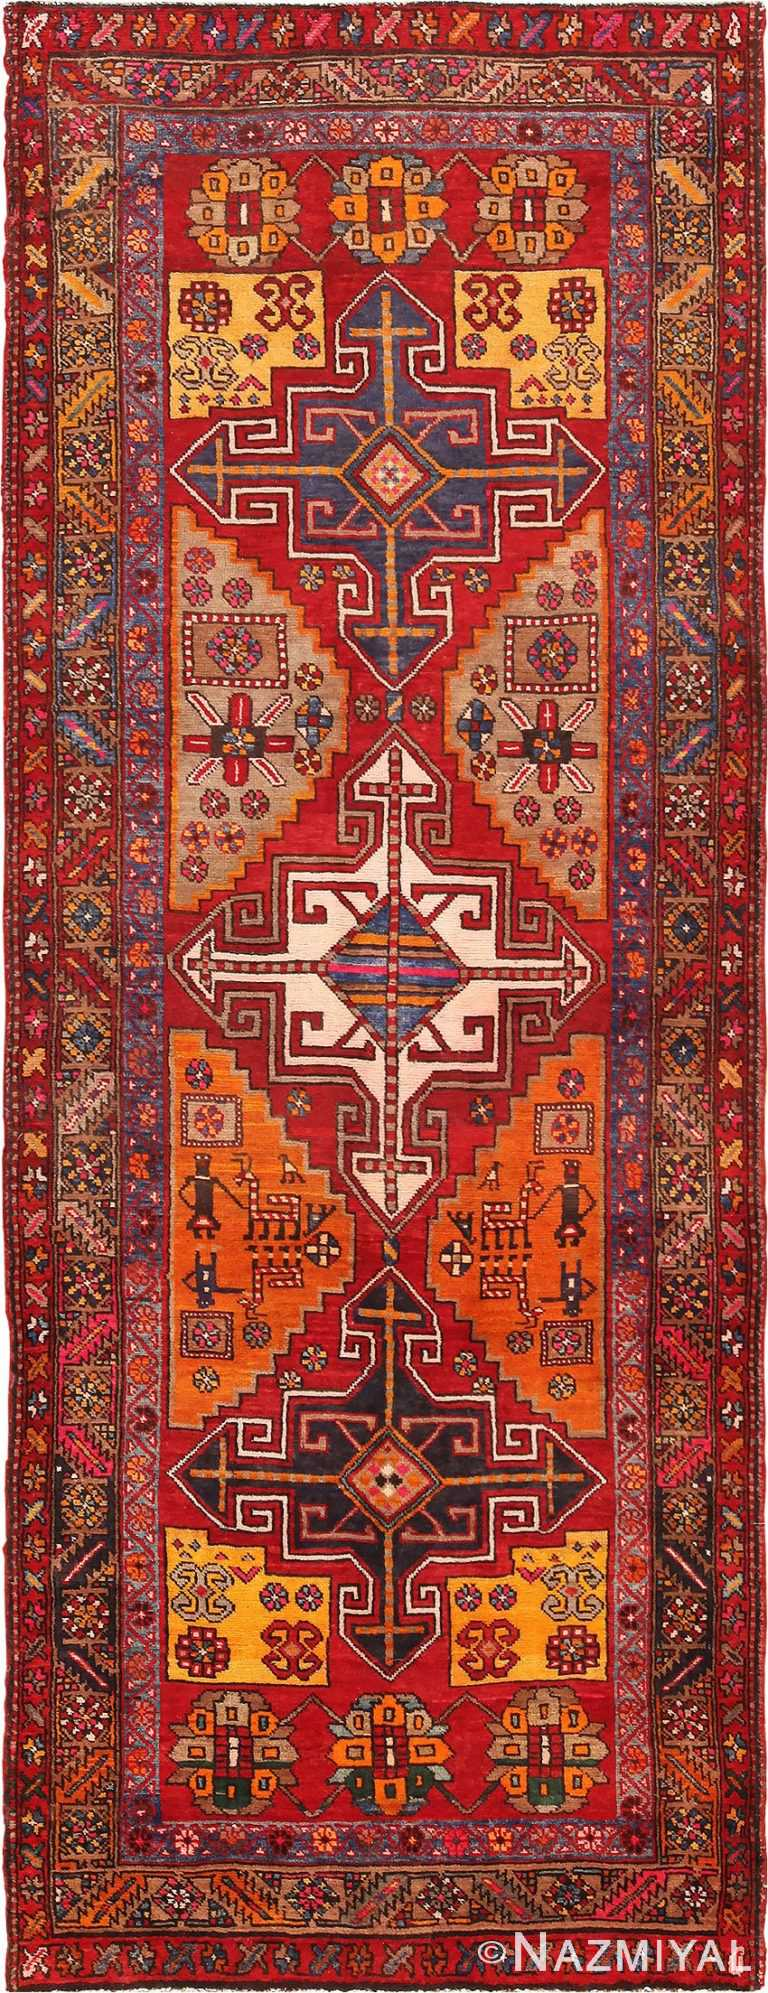 Red Geometric Vintage Persian Heriz Runner Rug #49978 from Nazmiyal Antique Rugs in NYC